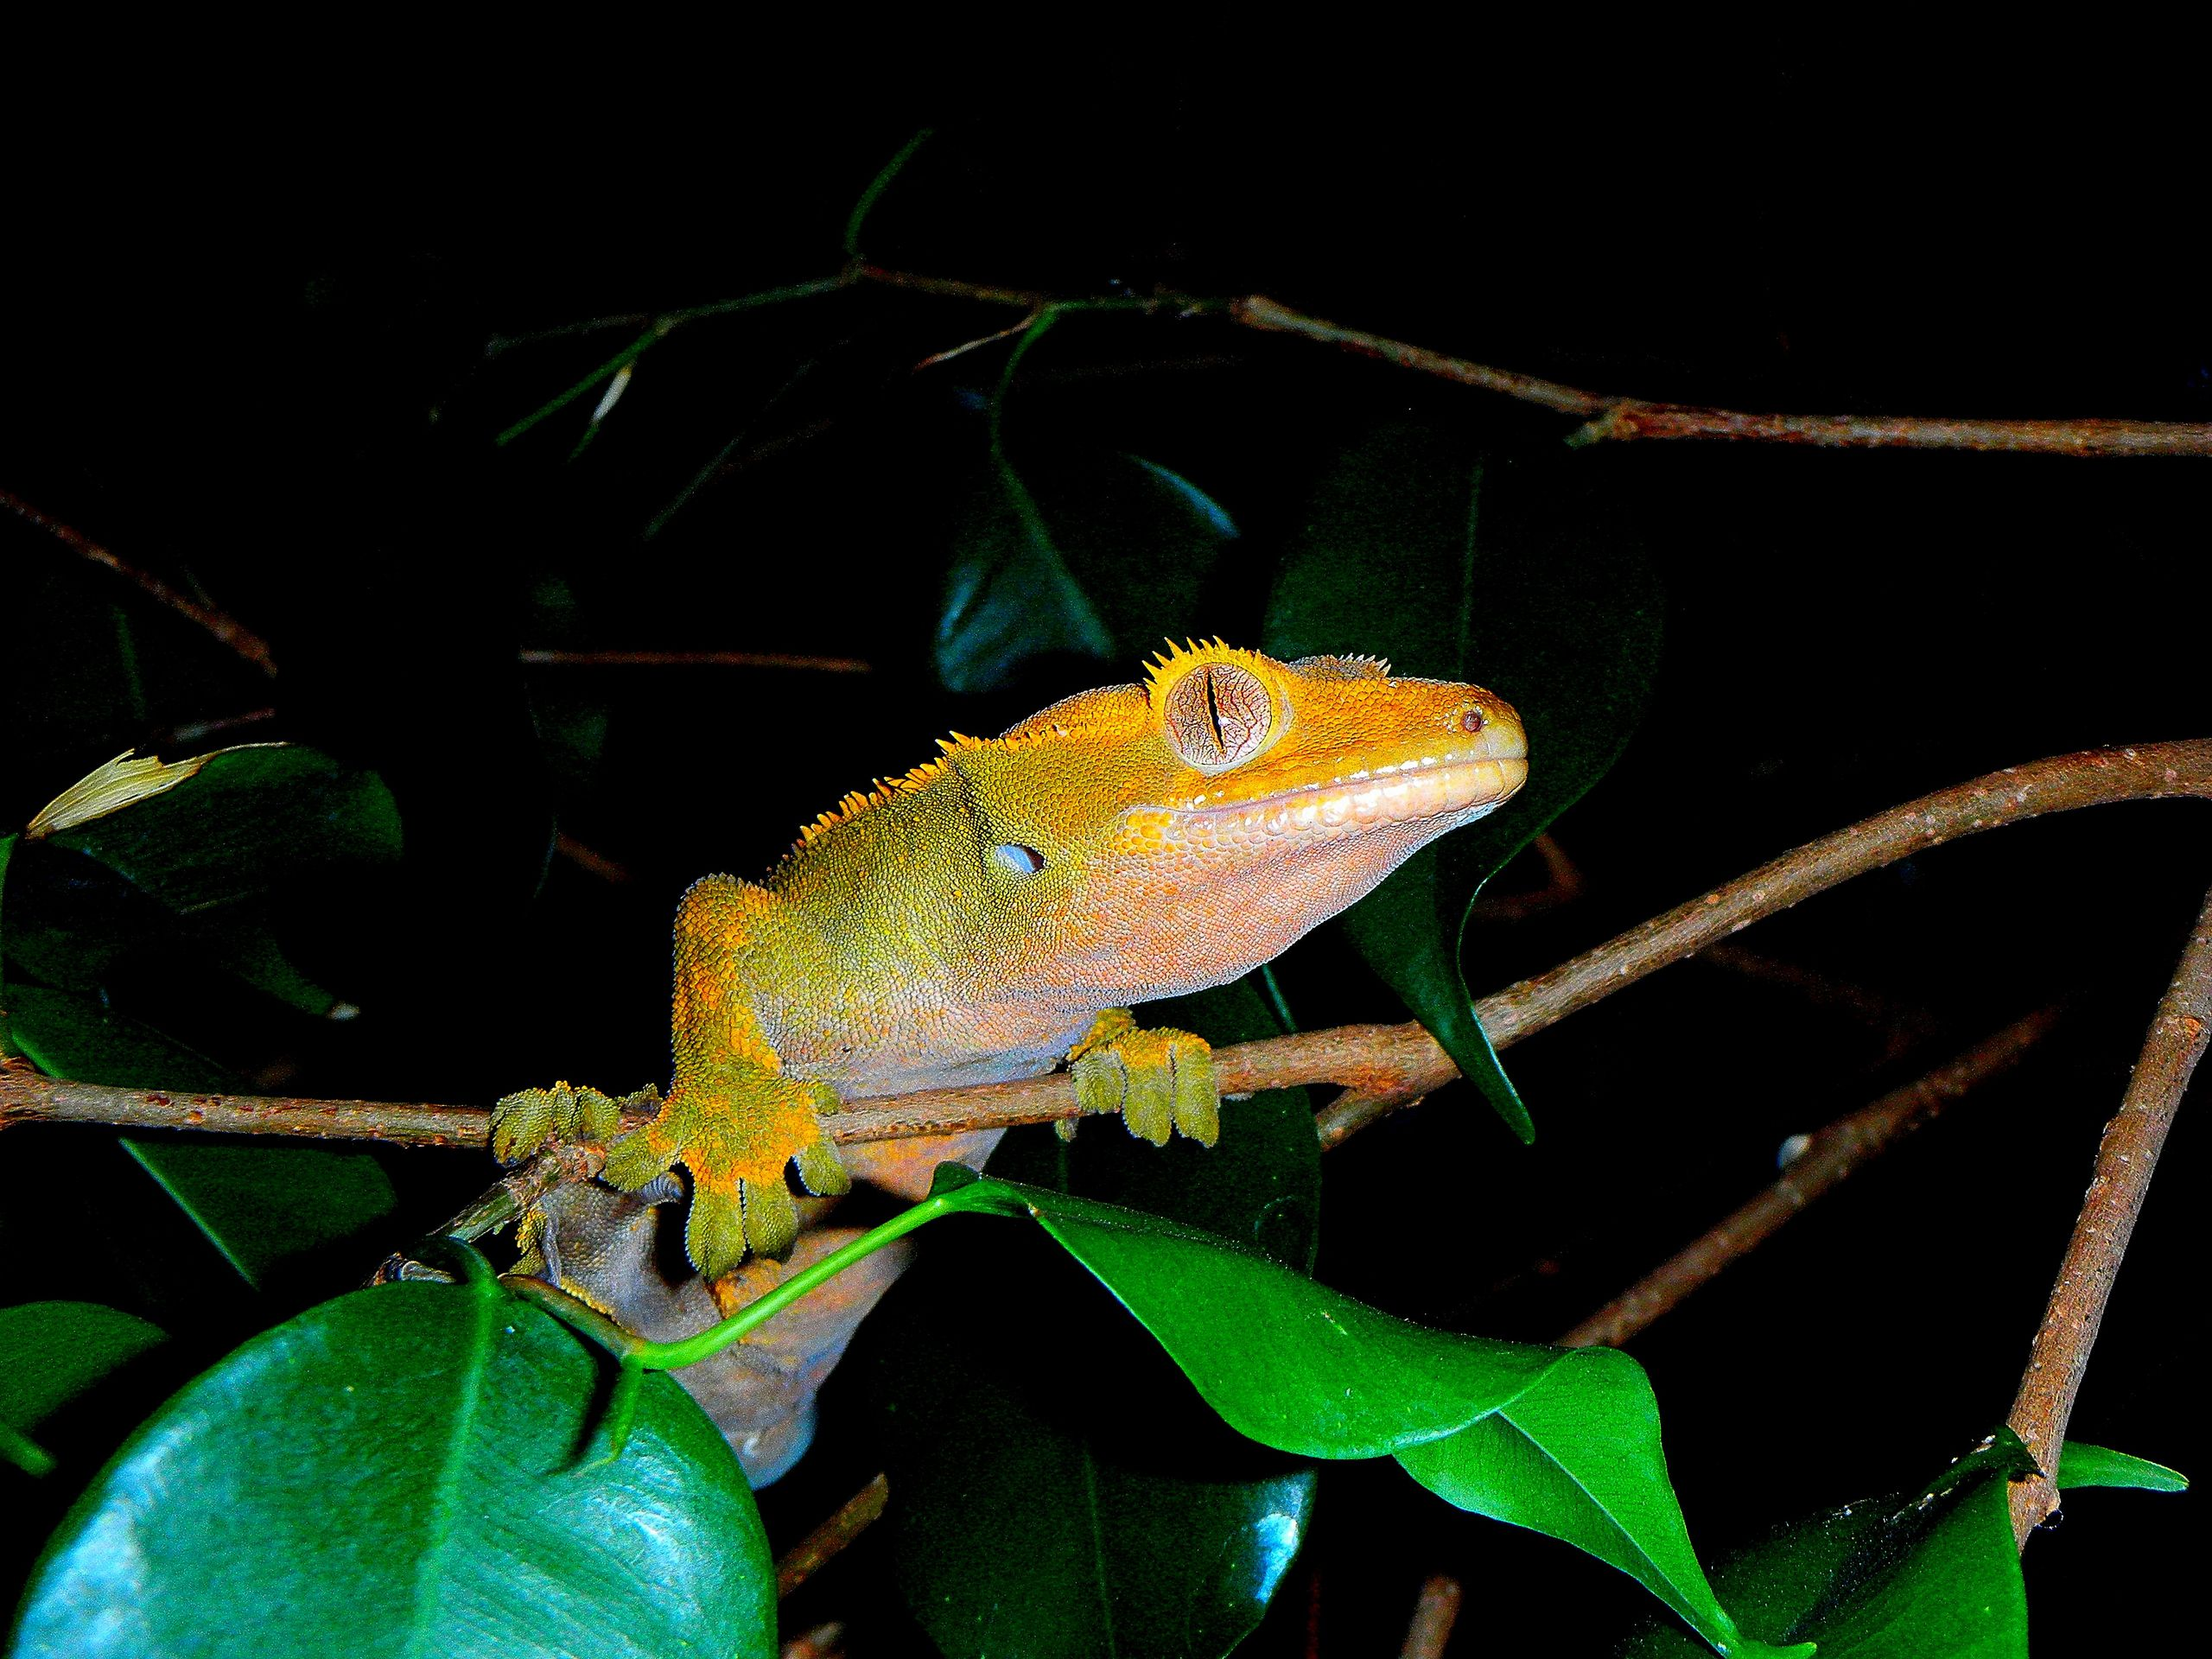 Crested Gecko Clipart.